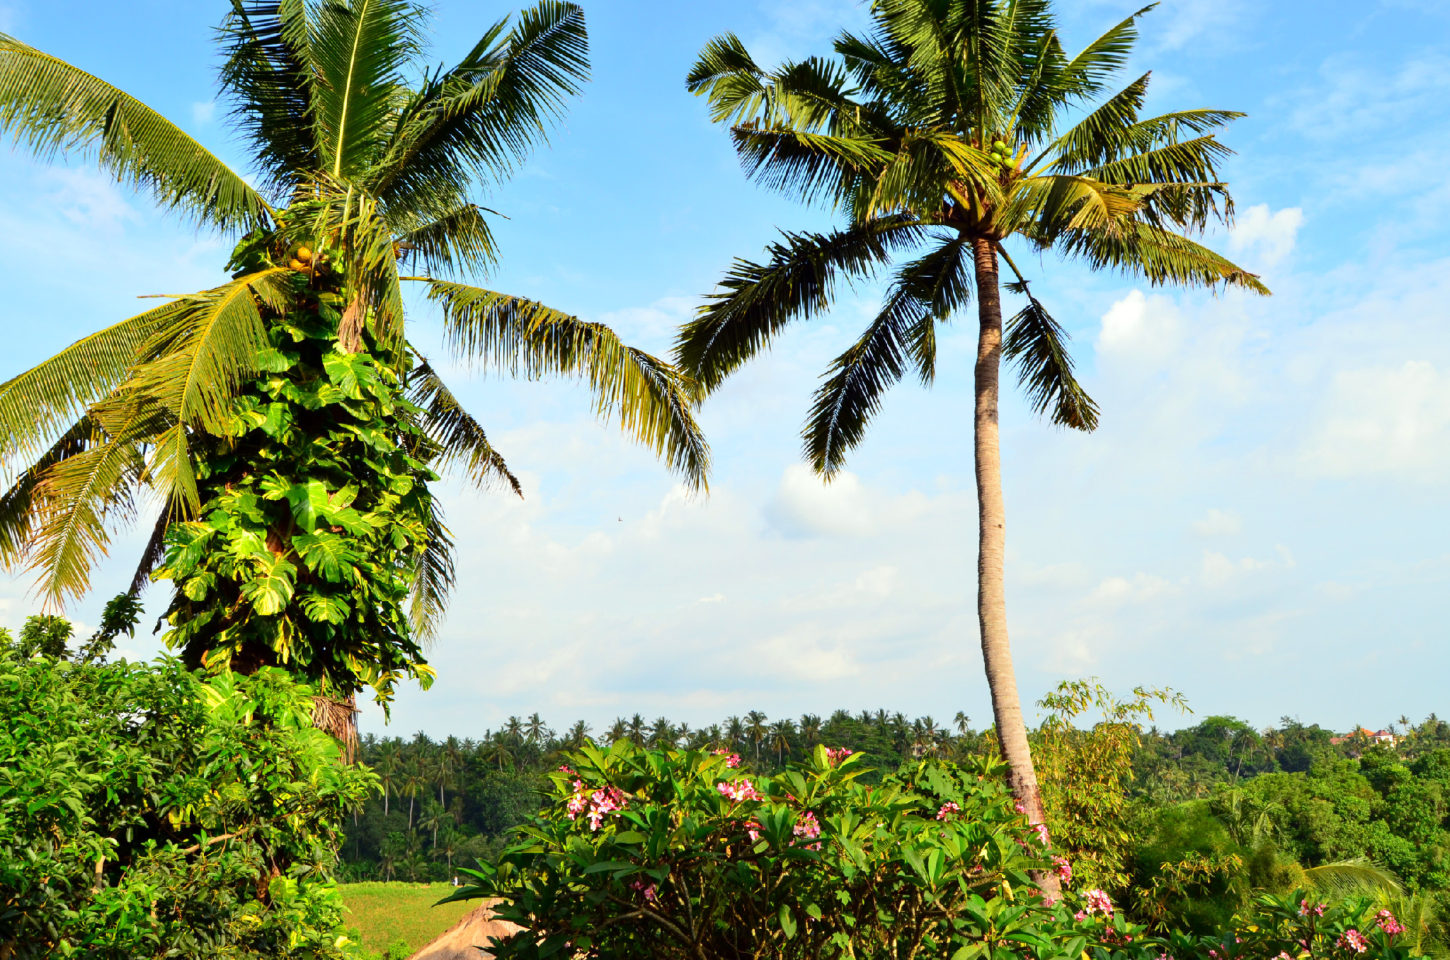 lifestyle redesign  - dsc 0305edited - Bali Travel: Where to Eat and Drink in Ubud